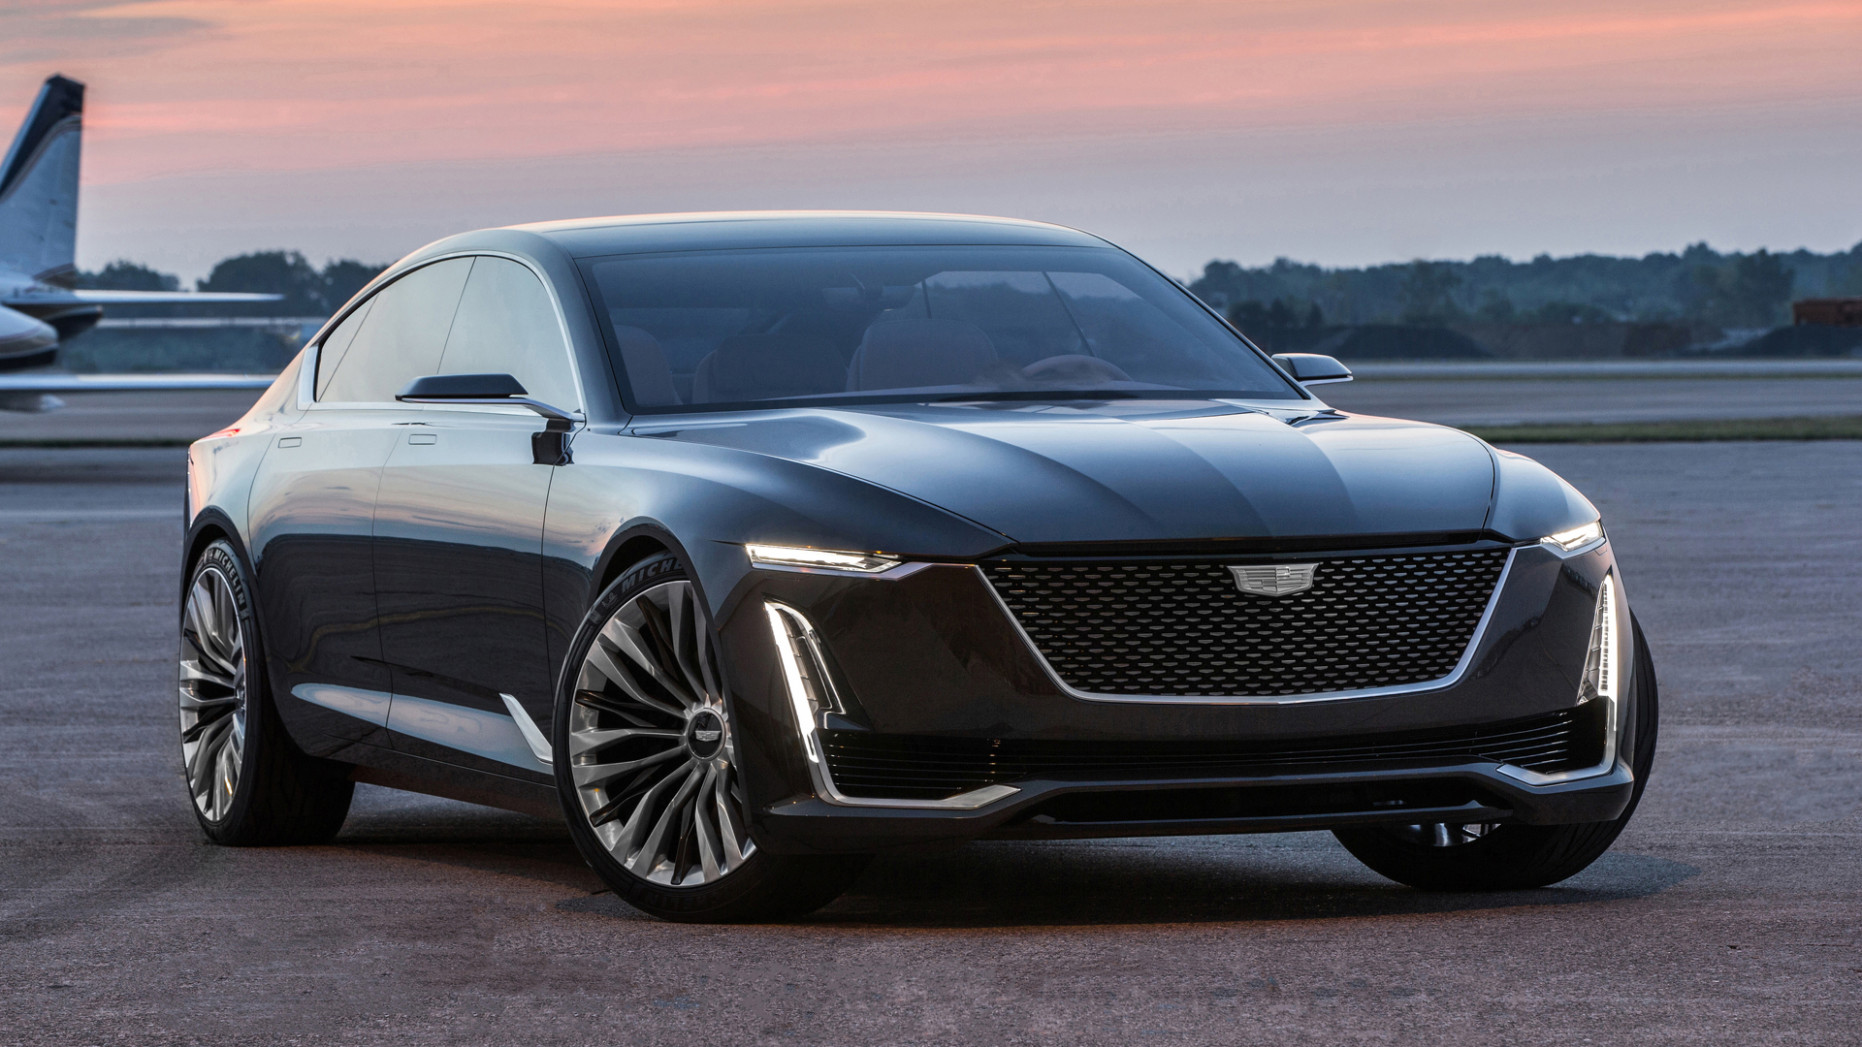 Redesign and Concept Cadillac Hybrid Suv 2022